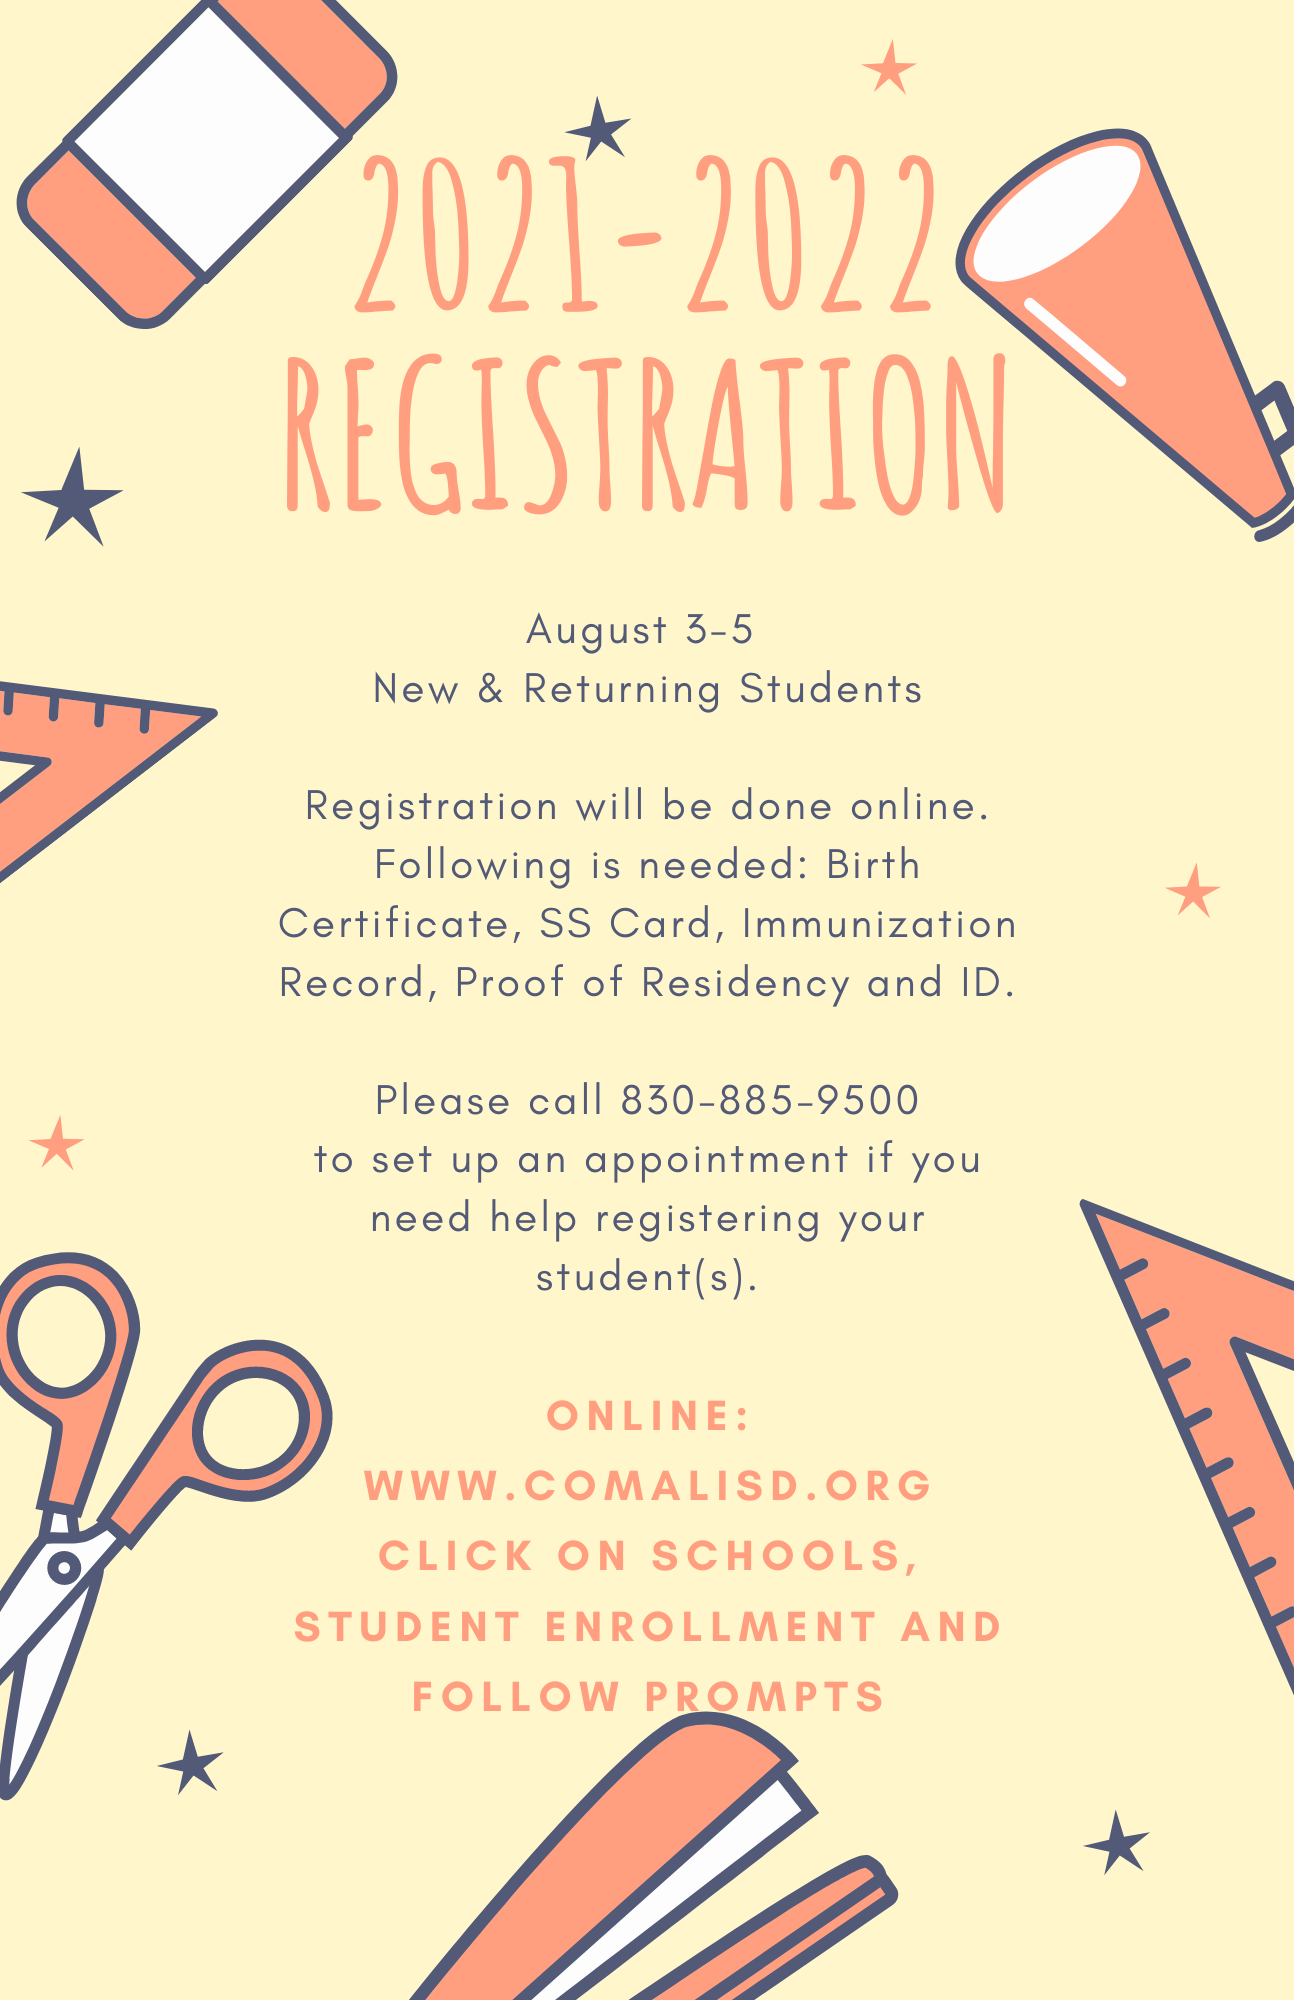 New & Returning Students to Comal ISD